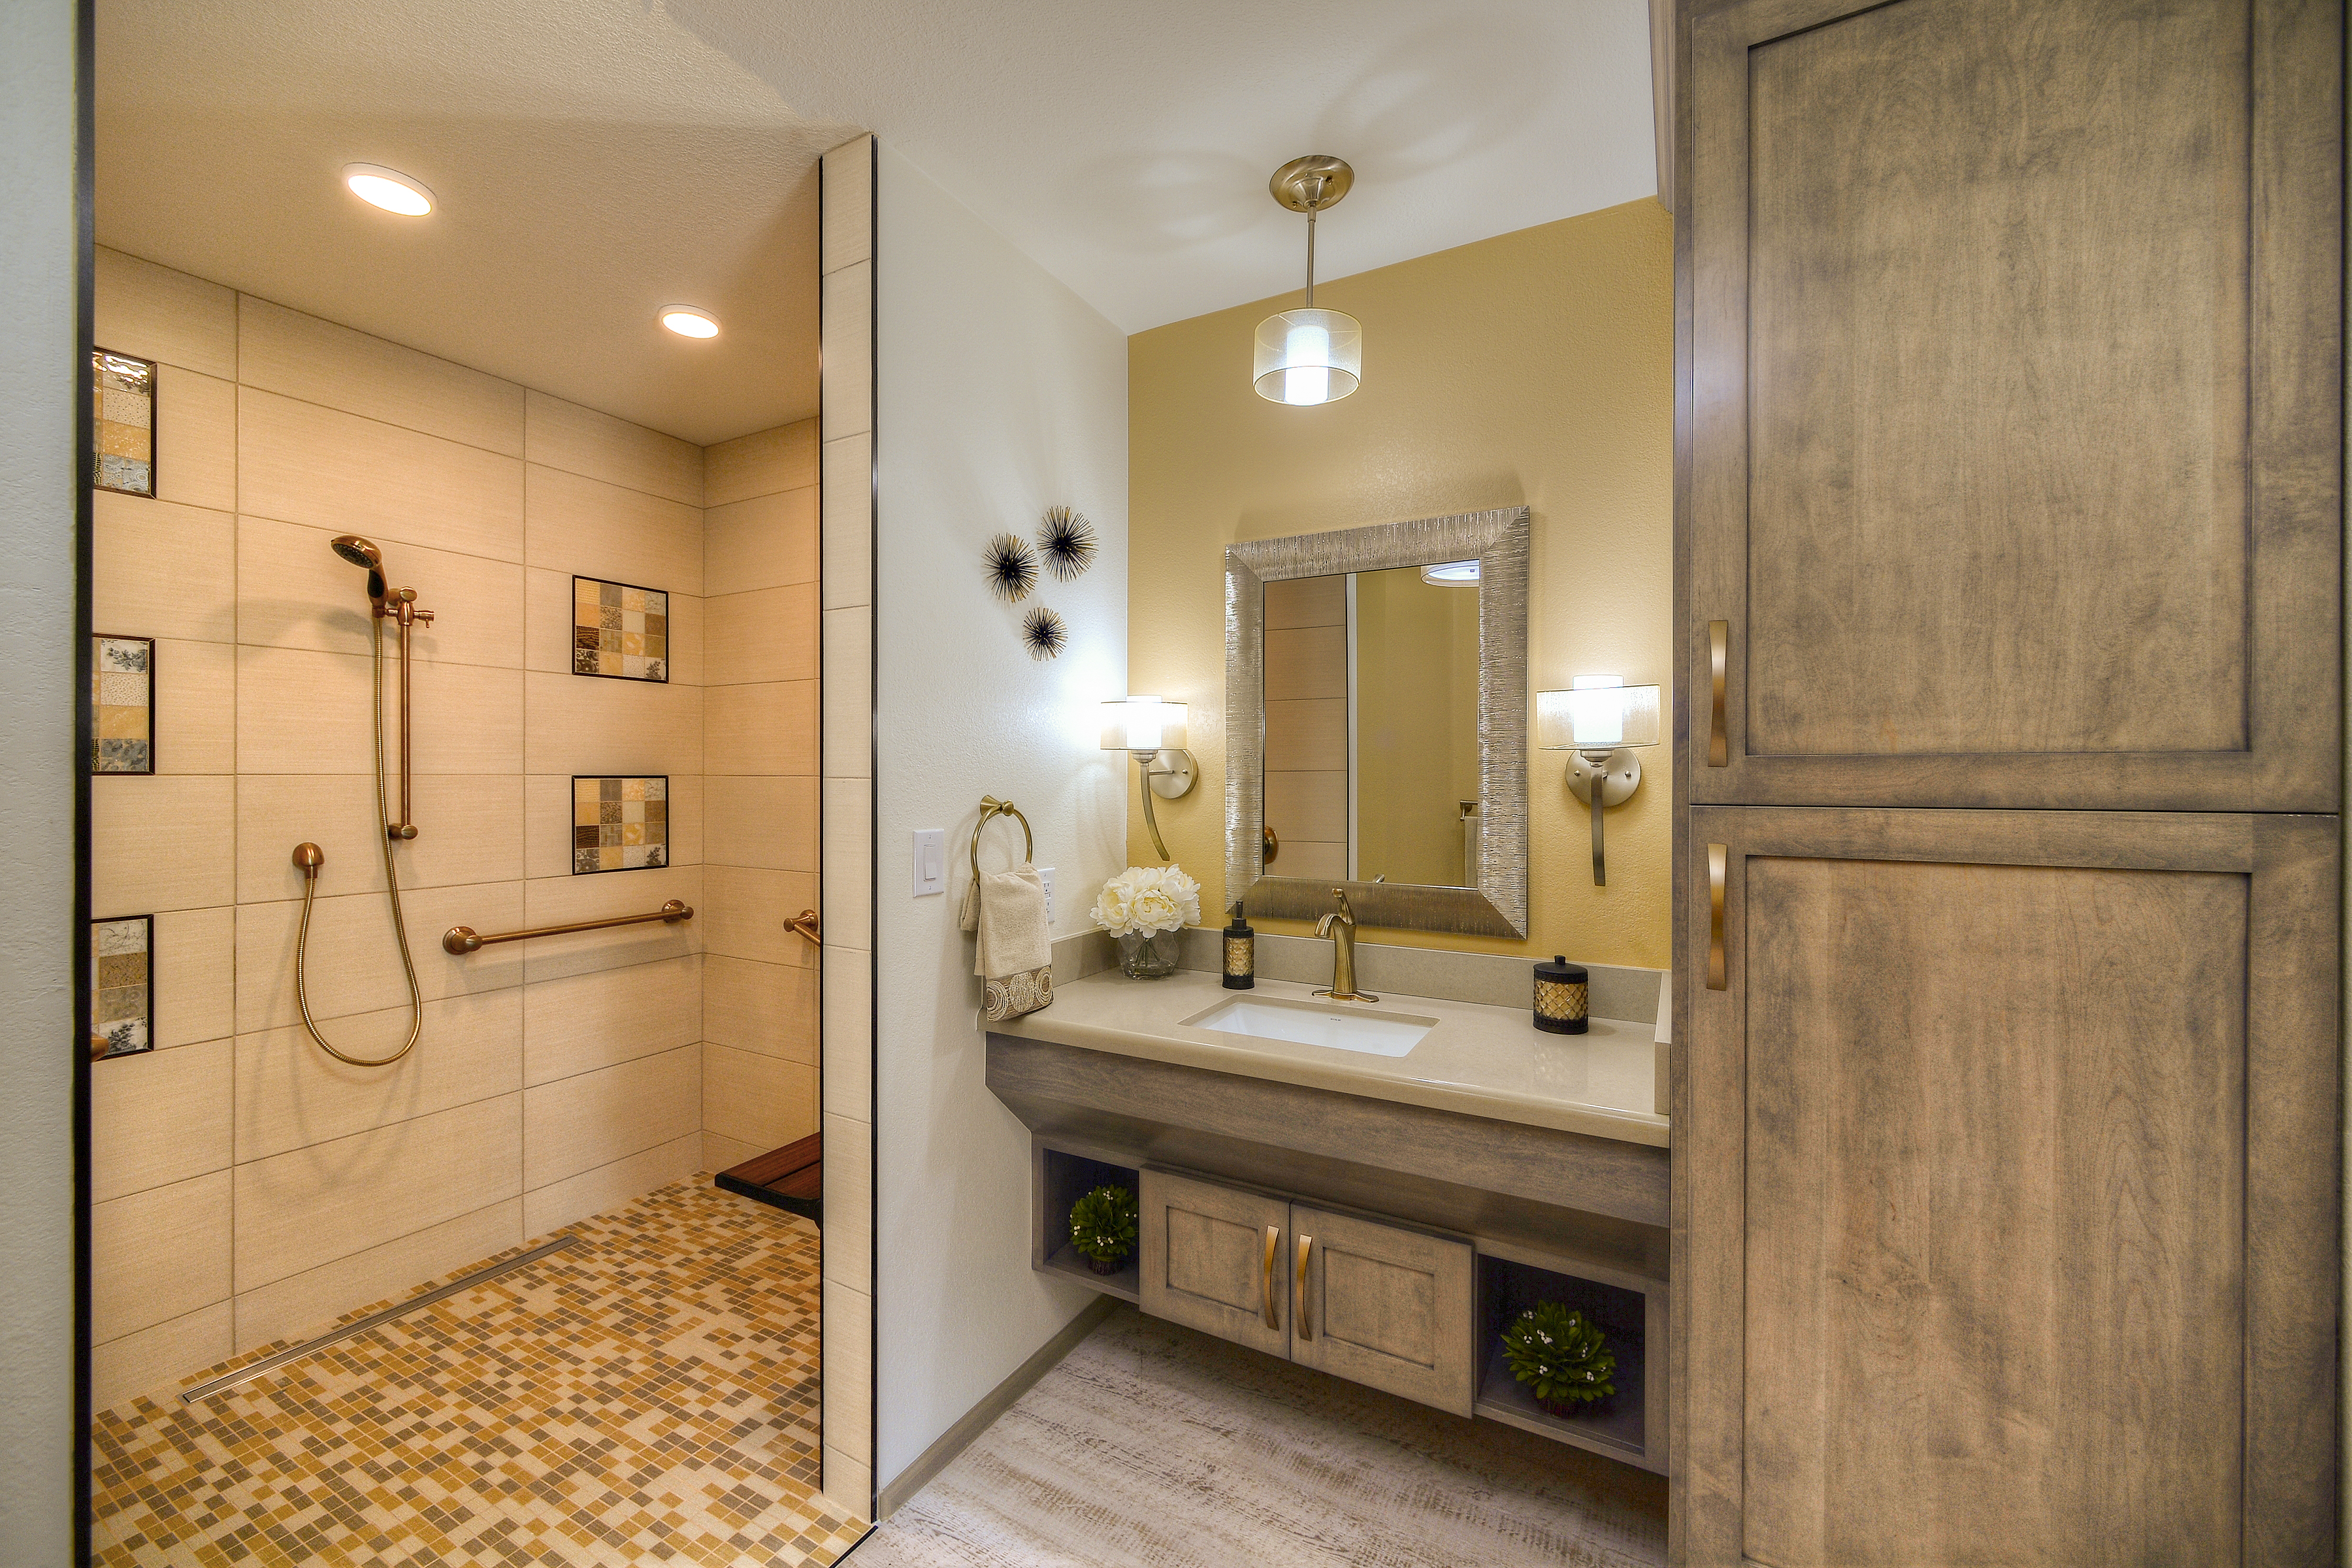 Scottsdale Aging In Place Remodel Dementia Supportive Design For Homeowner Sister In Law  Tlc Interior Design